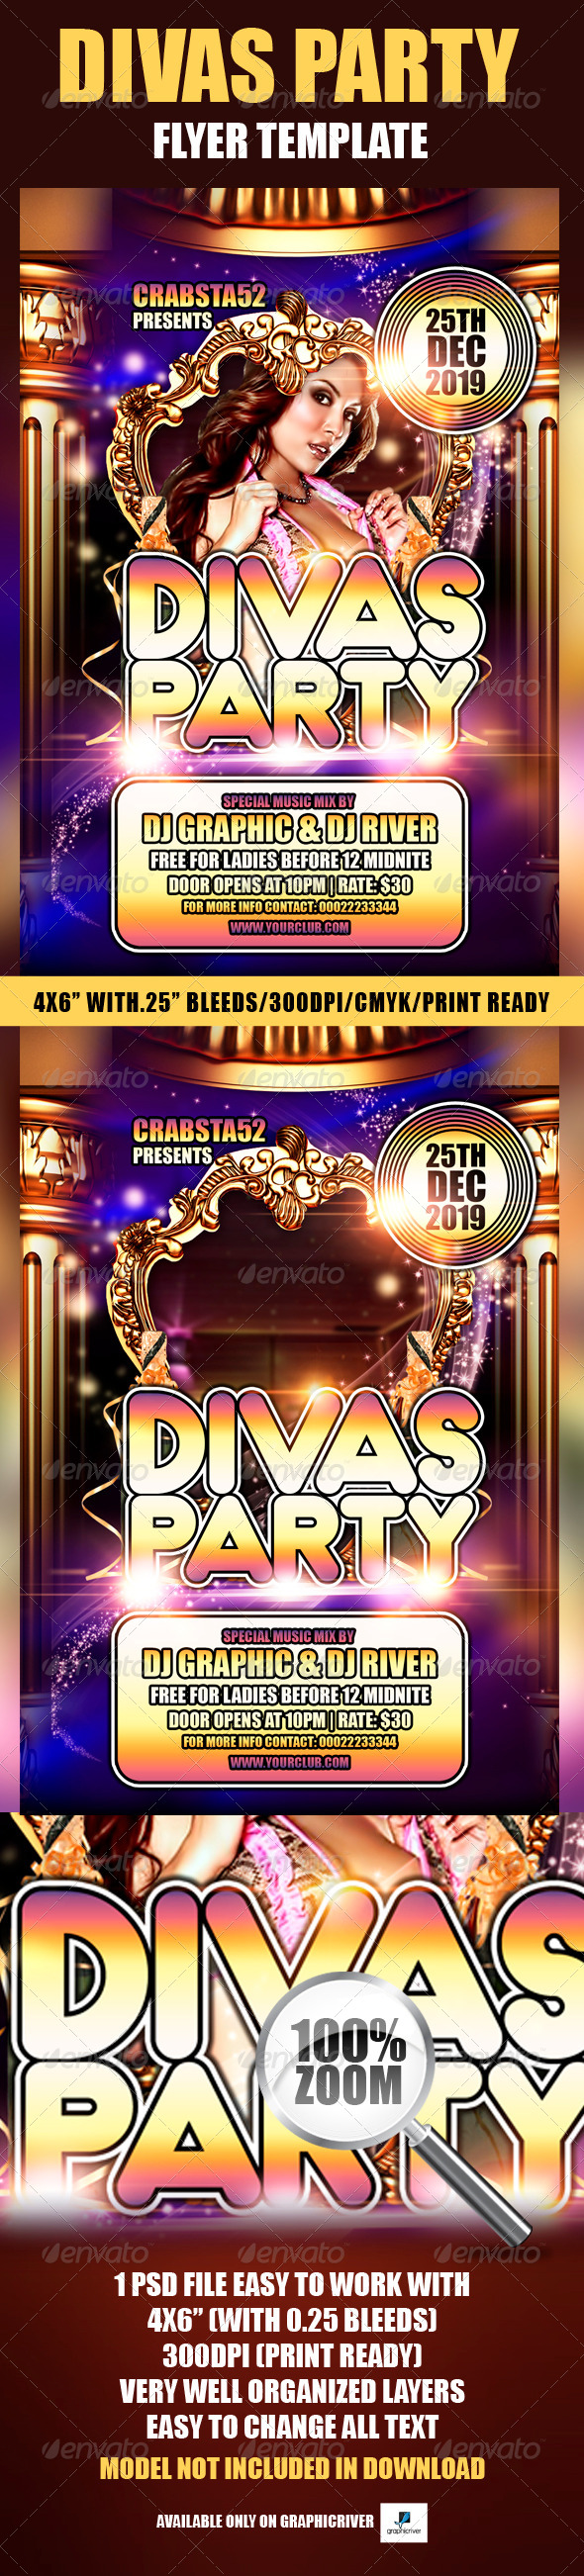 Divas Party Flyer Template - Flyers Print Templates